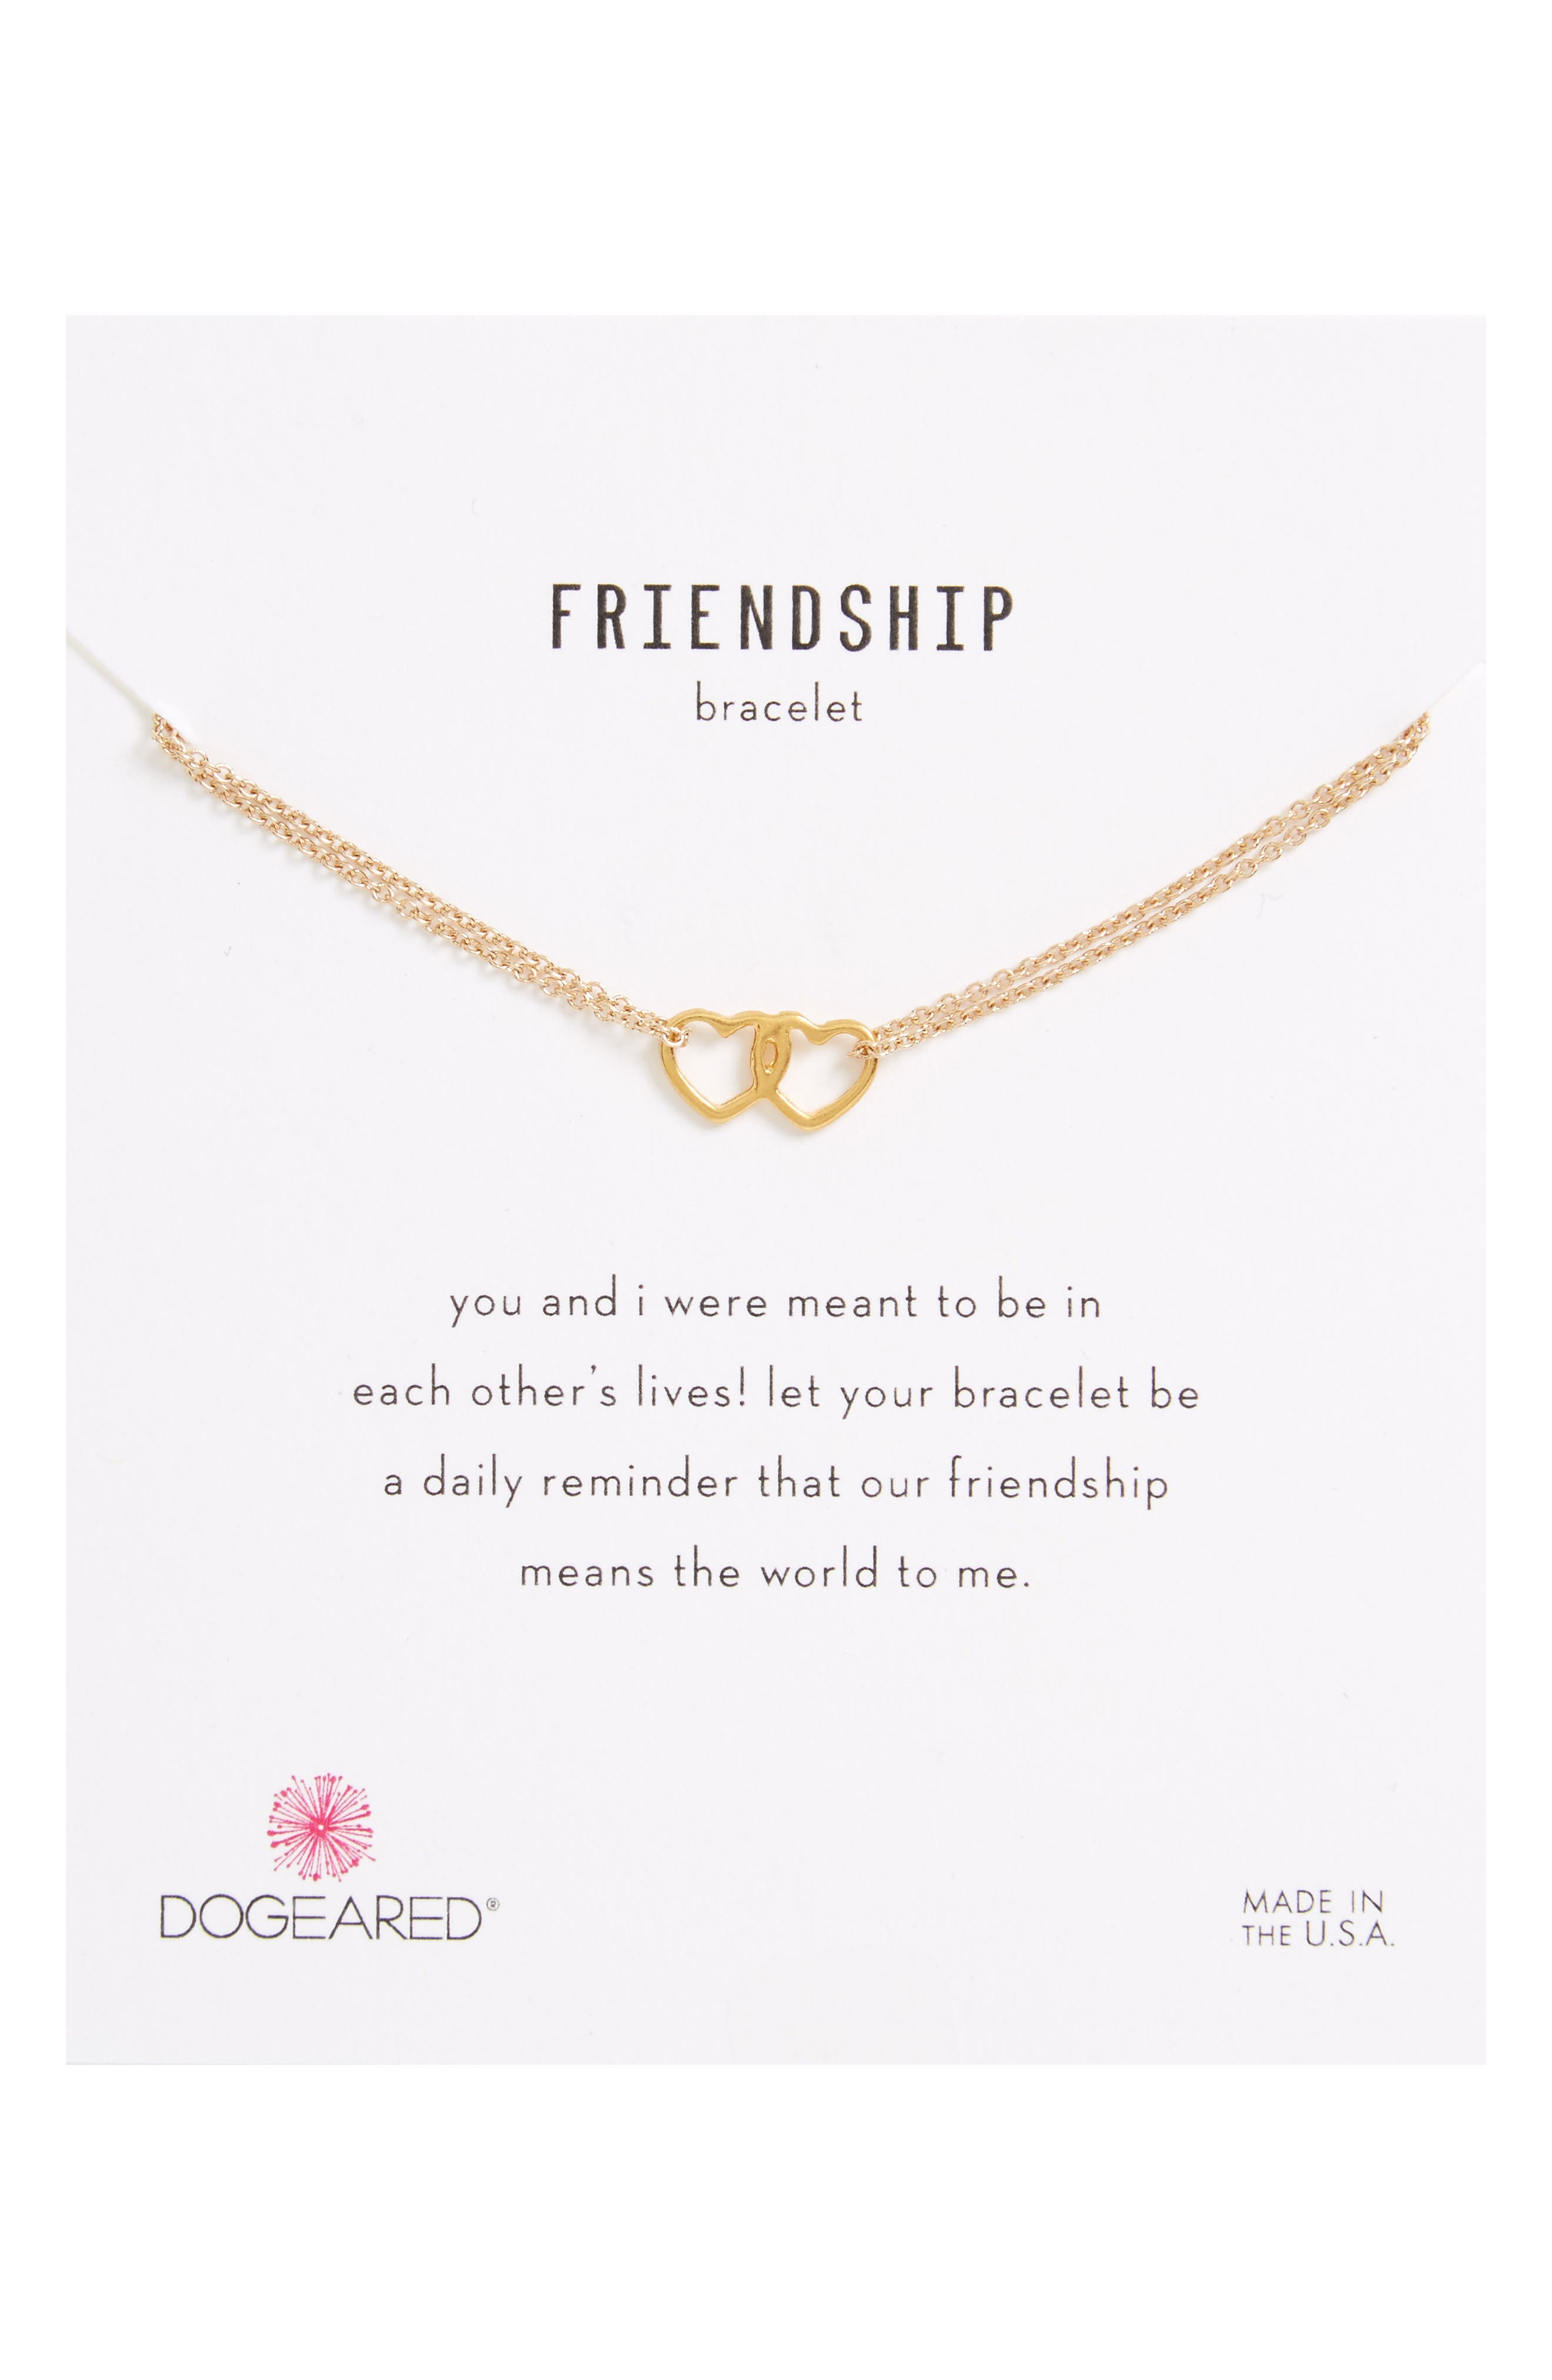 Alternate Image 1 Selected - Dogeared Friendship Linked Open Heart Charm Chain Bracelet